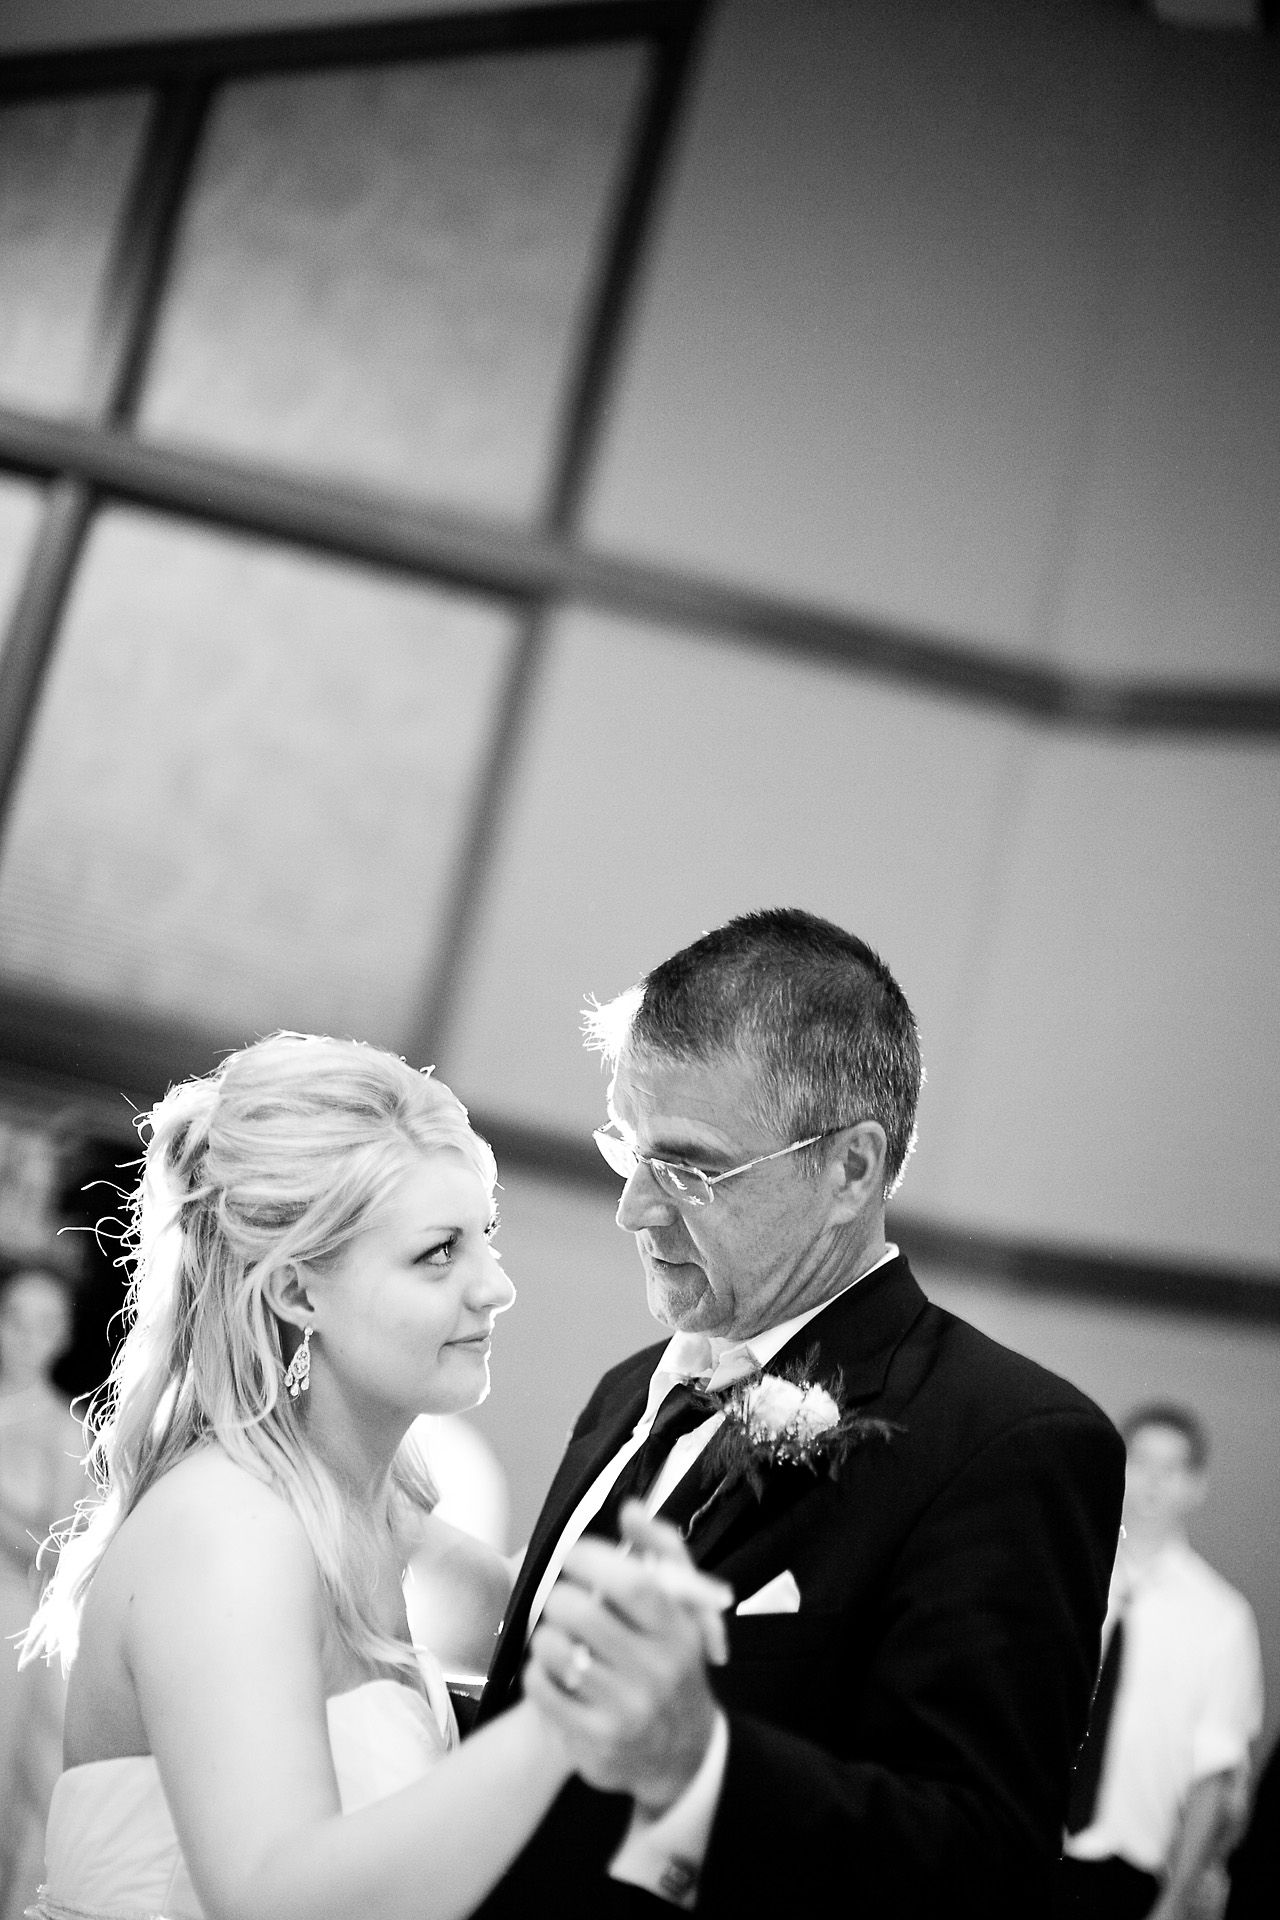 Fatherdaughter dance. This will mean a lot to me